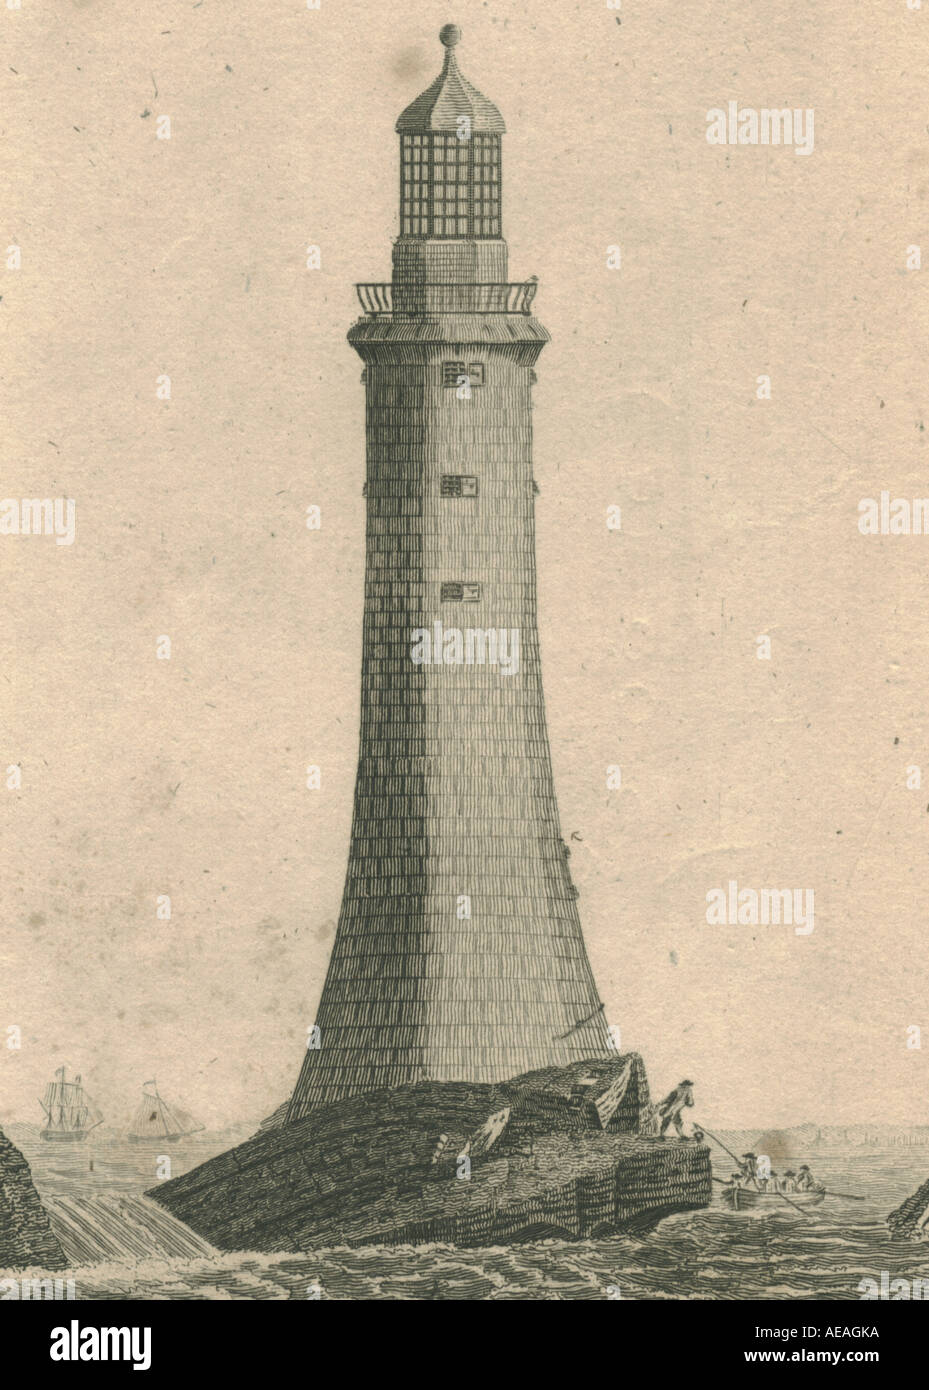 Eddystone Lighthouse circa 1791 - Stock Image